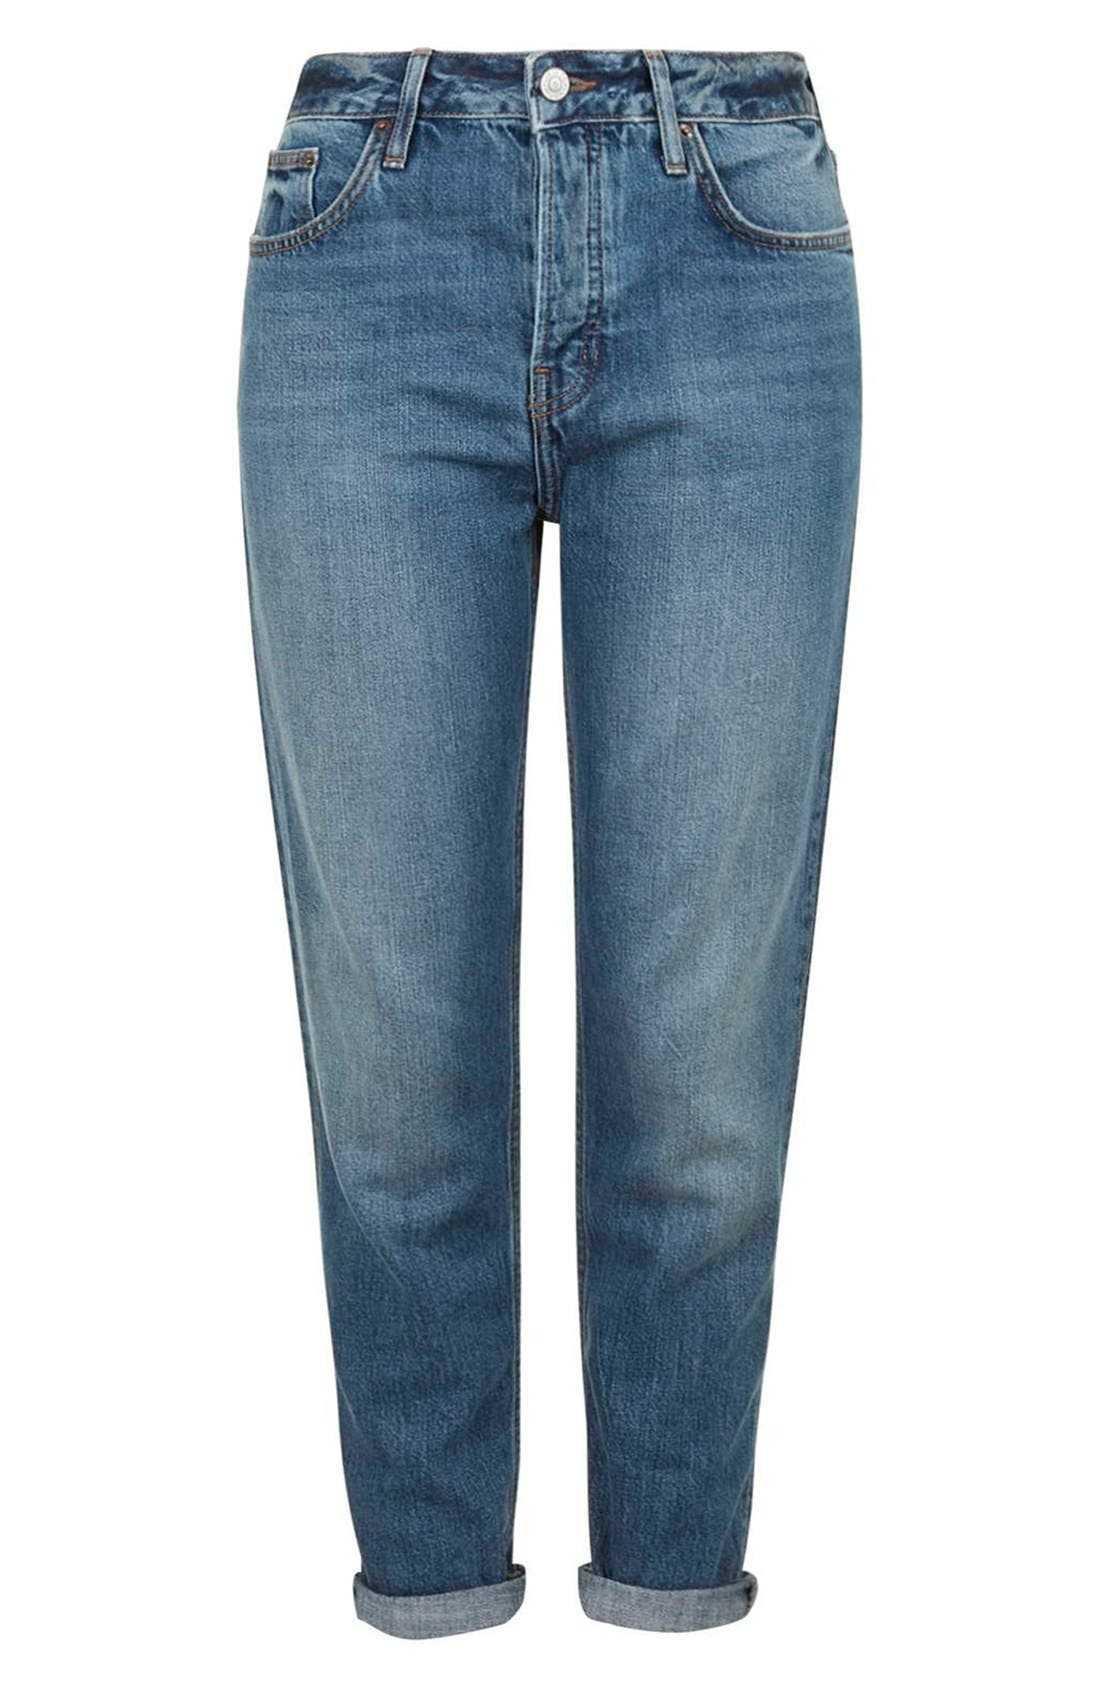 TOPSHOP,                             Moto 'Hayden' Boyfriend Jeans,                             Alternate thumbnail 2, color,                             400